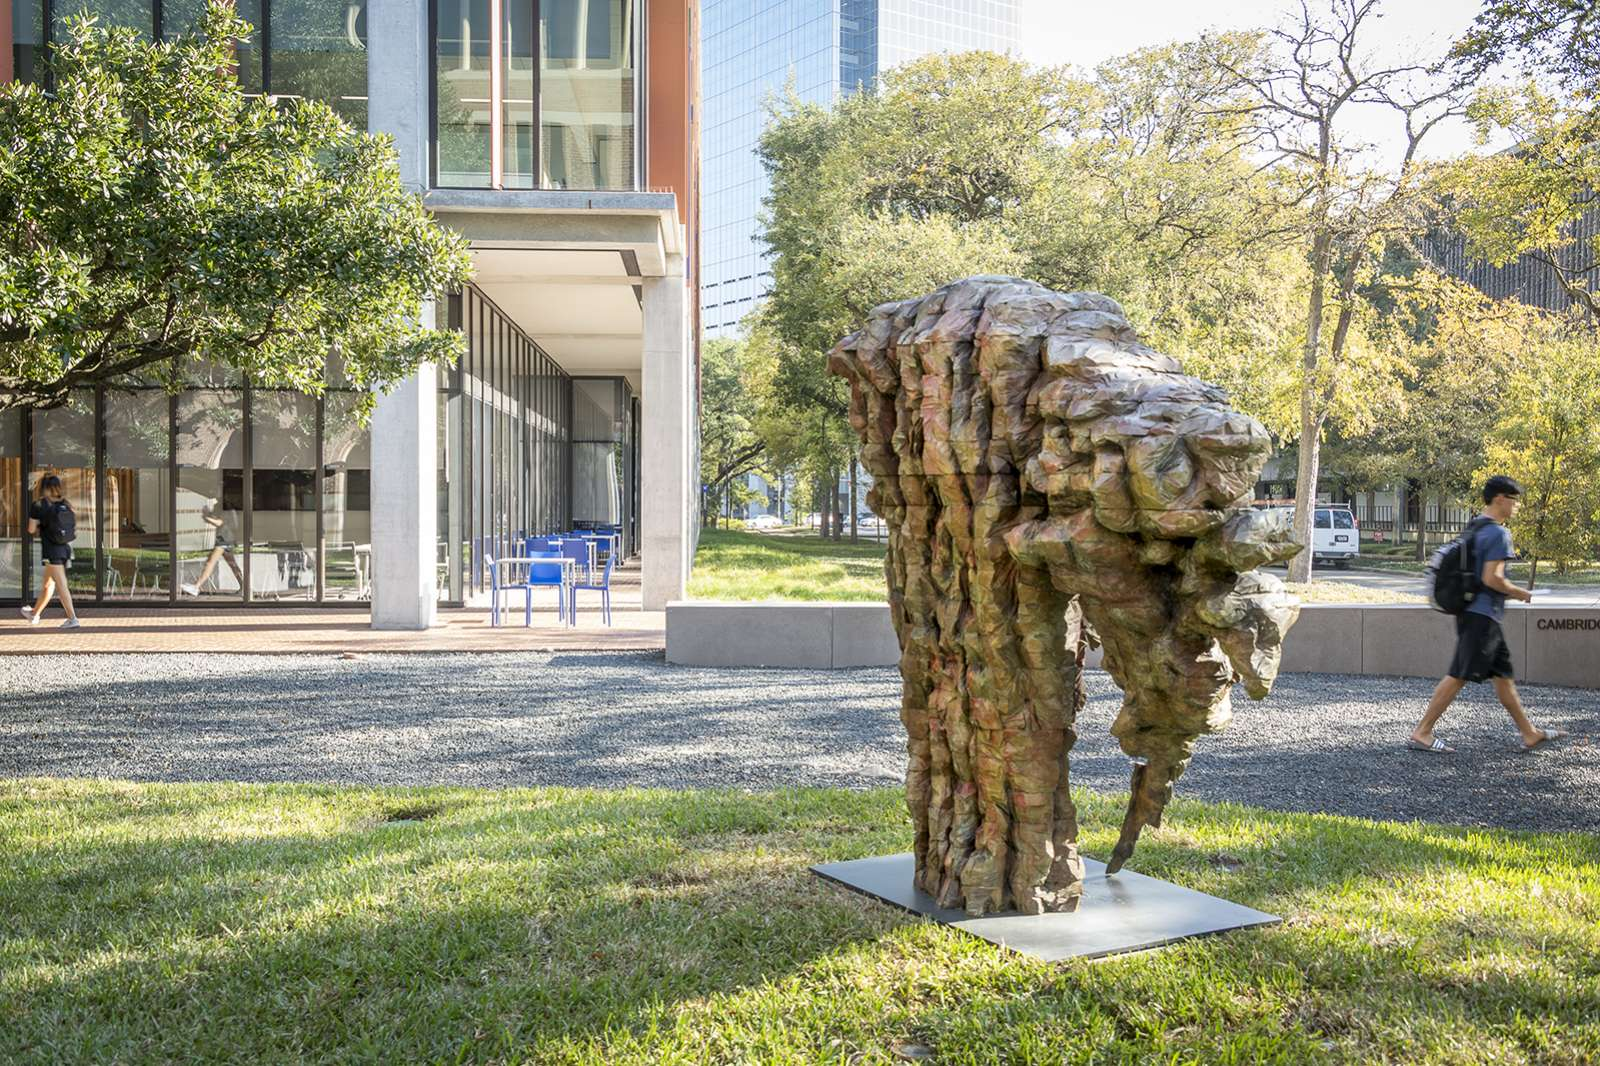 Ursula von Rydingsvard, Malutka II, 2018. Bronze. Photo by Nash Baker.